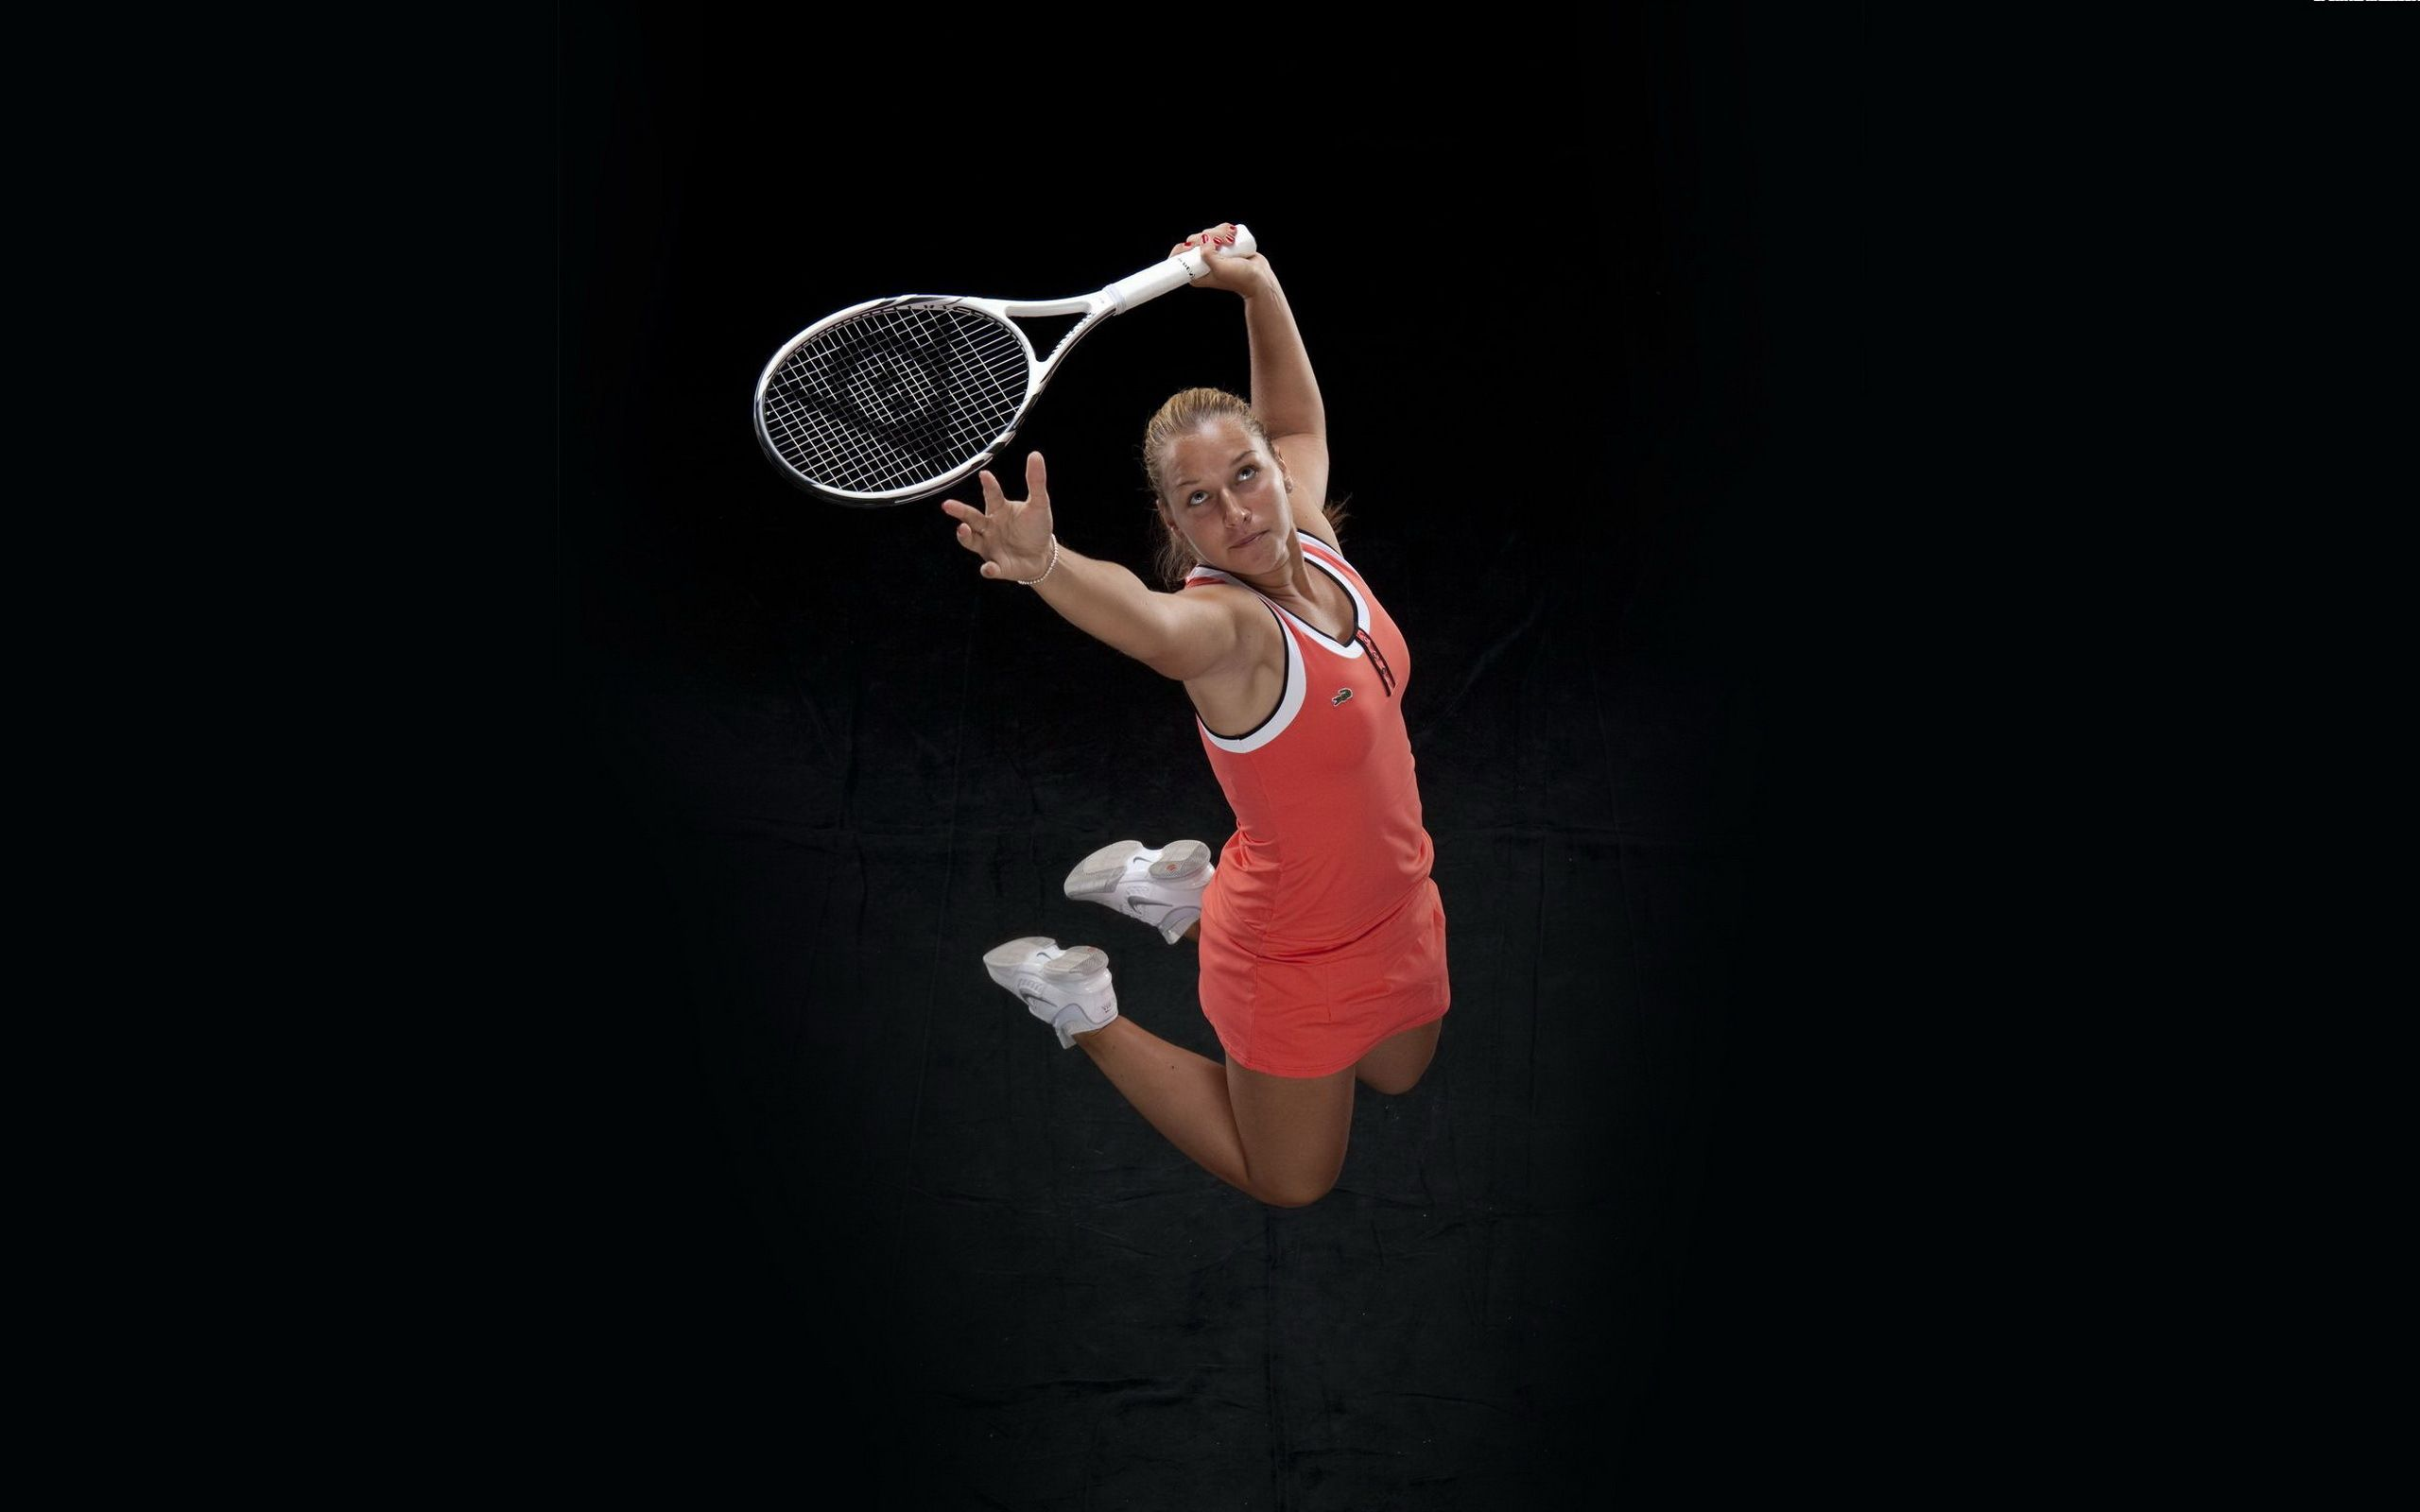 Awesome Tennis Background Computer